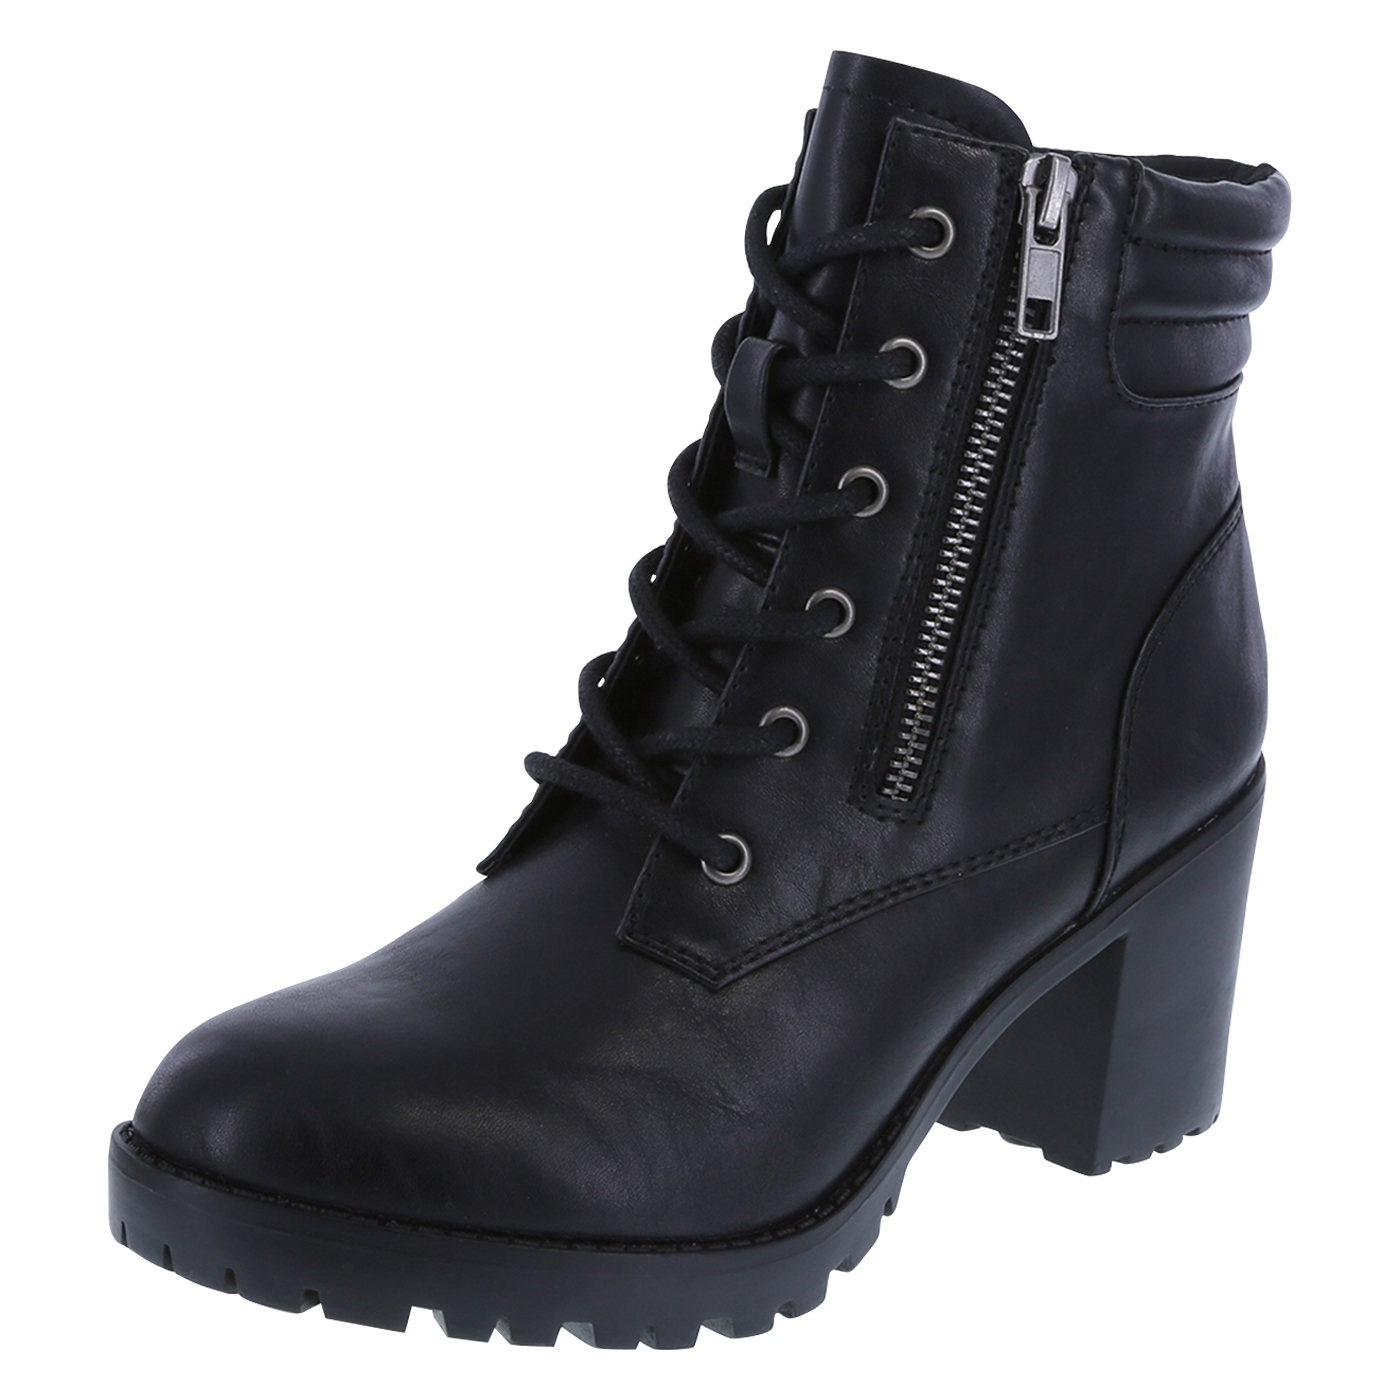 Womens Black Lace Up Boots Nnt3izQ2